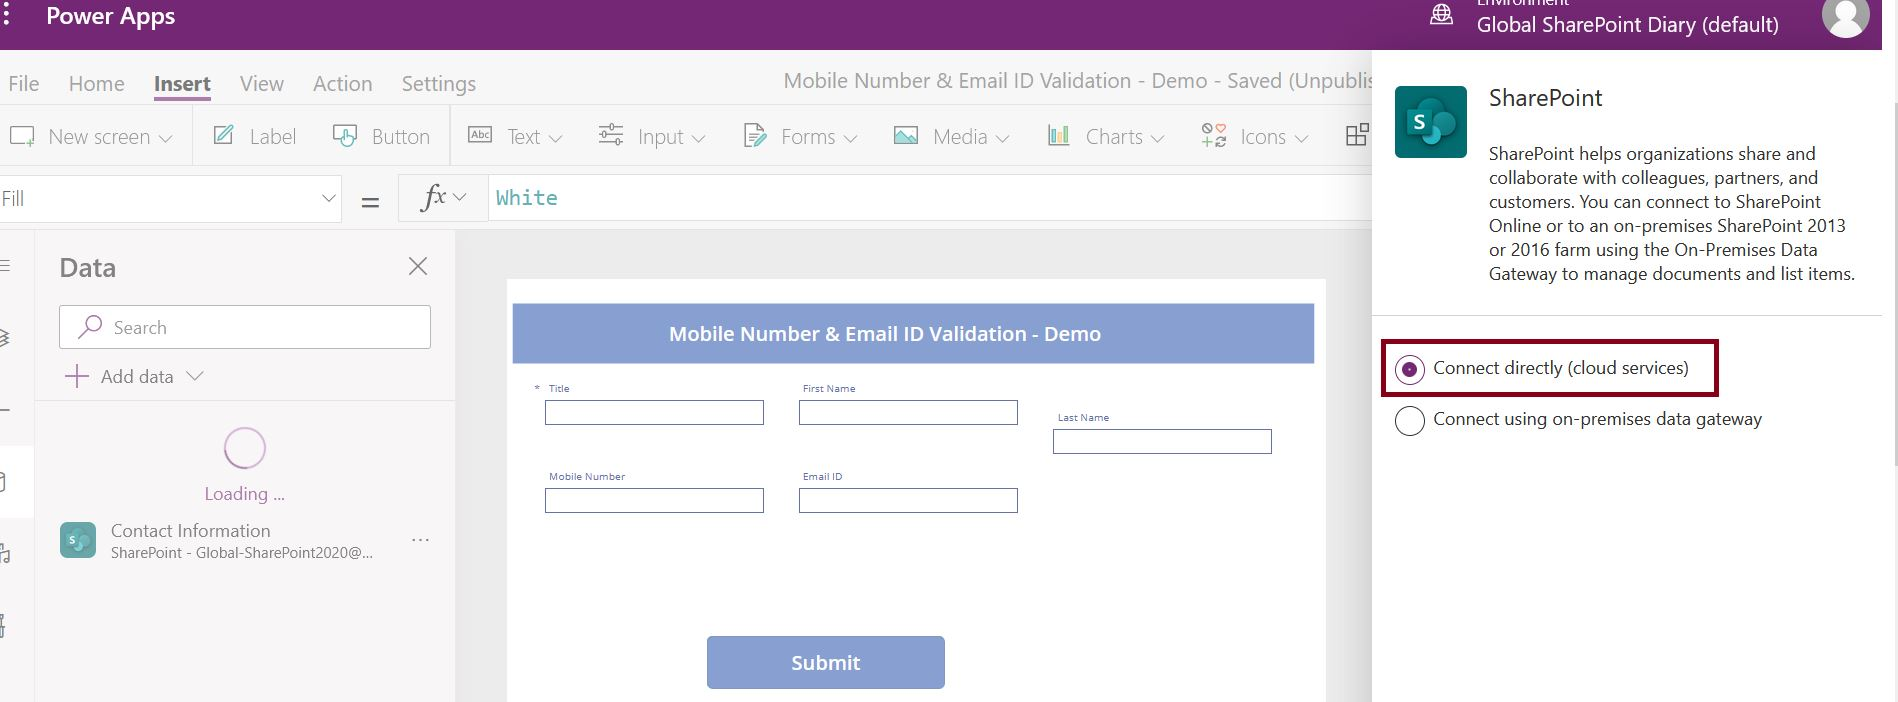 Connect directly (cloud services) in PowerApps